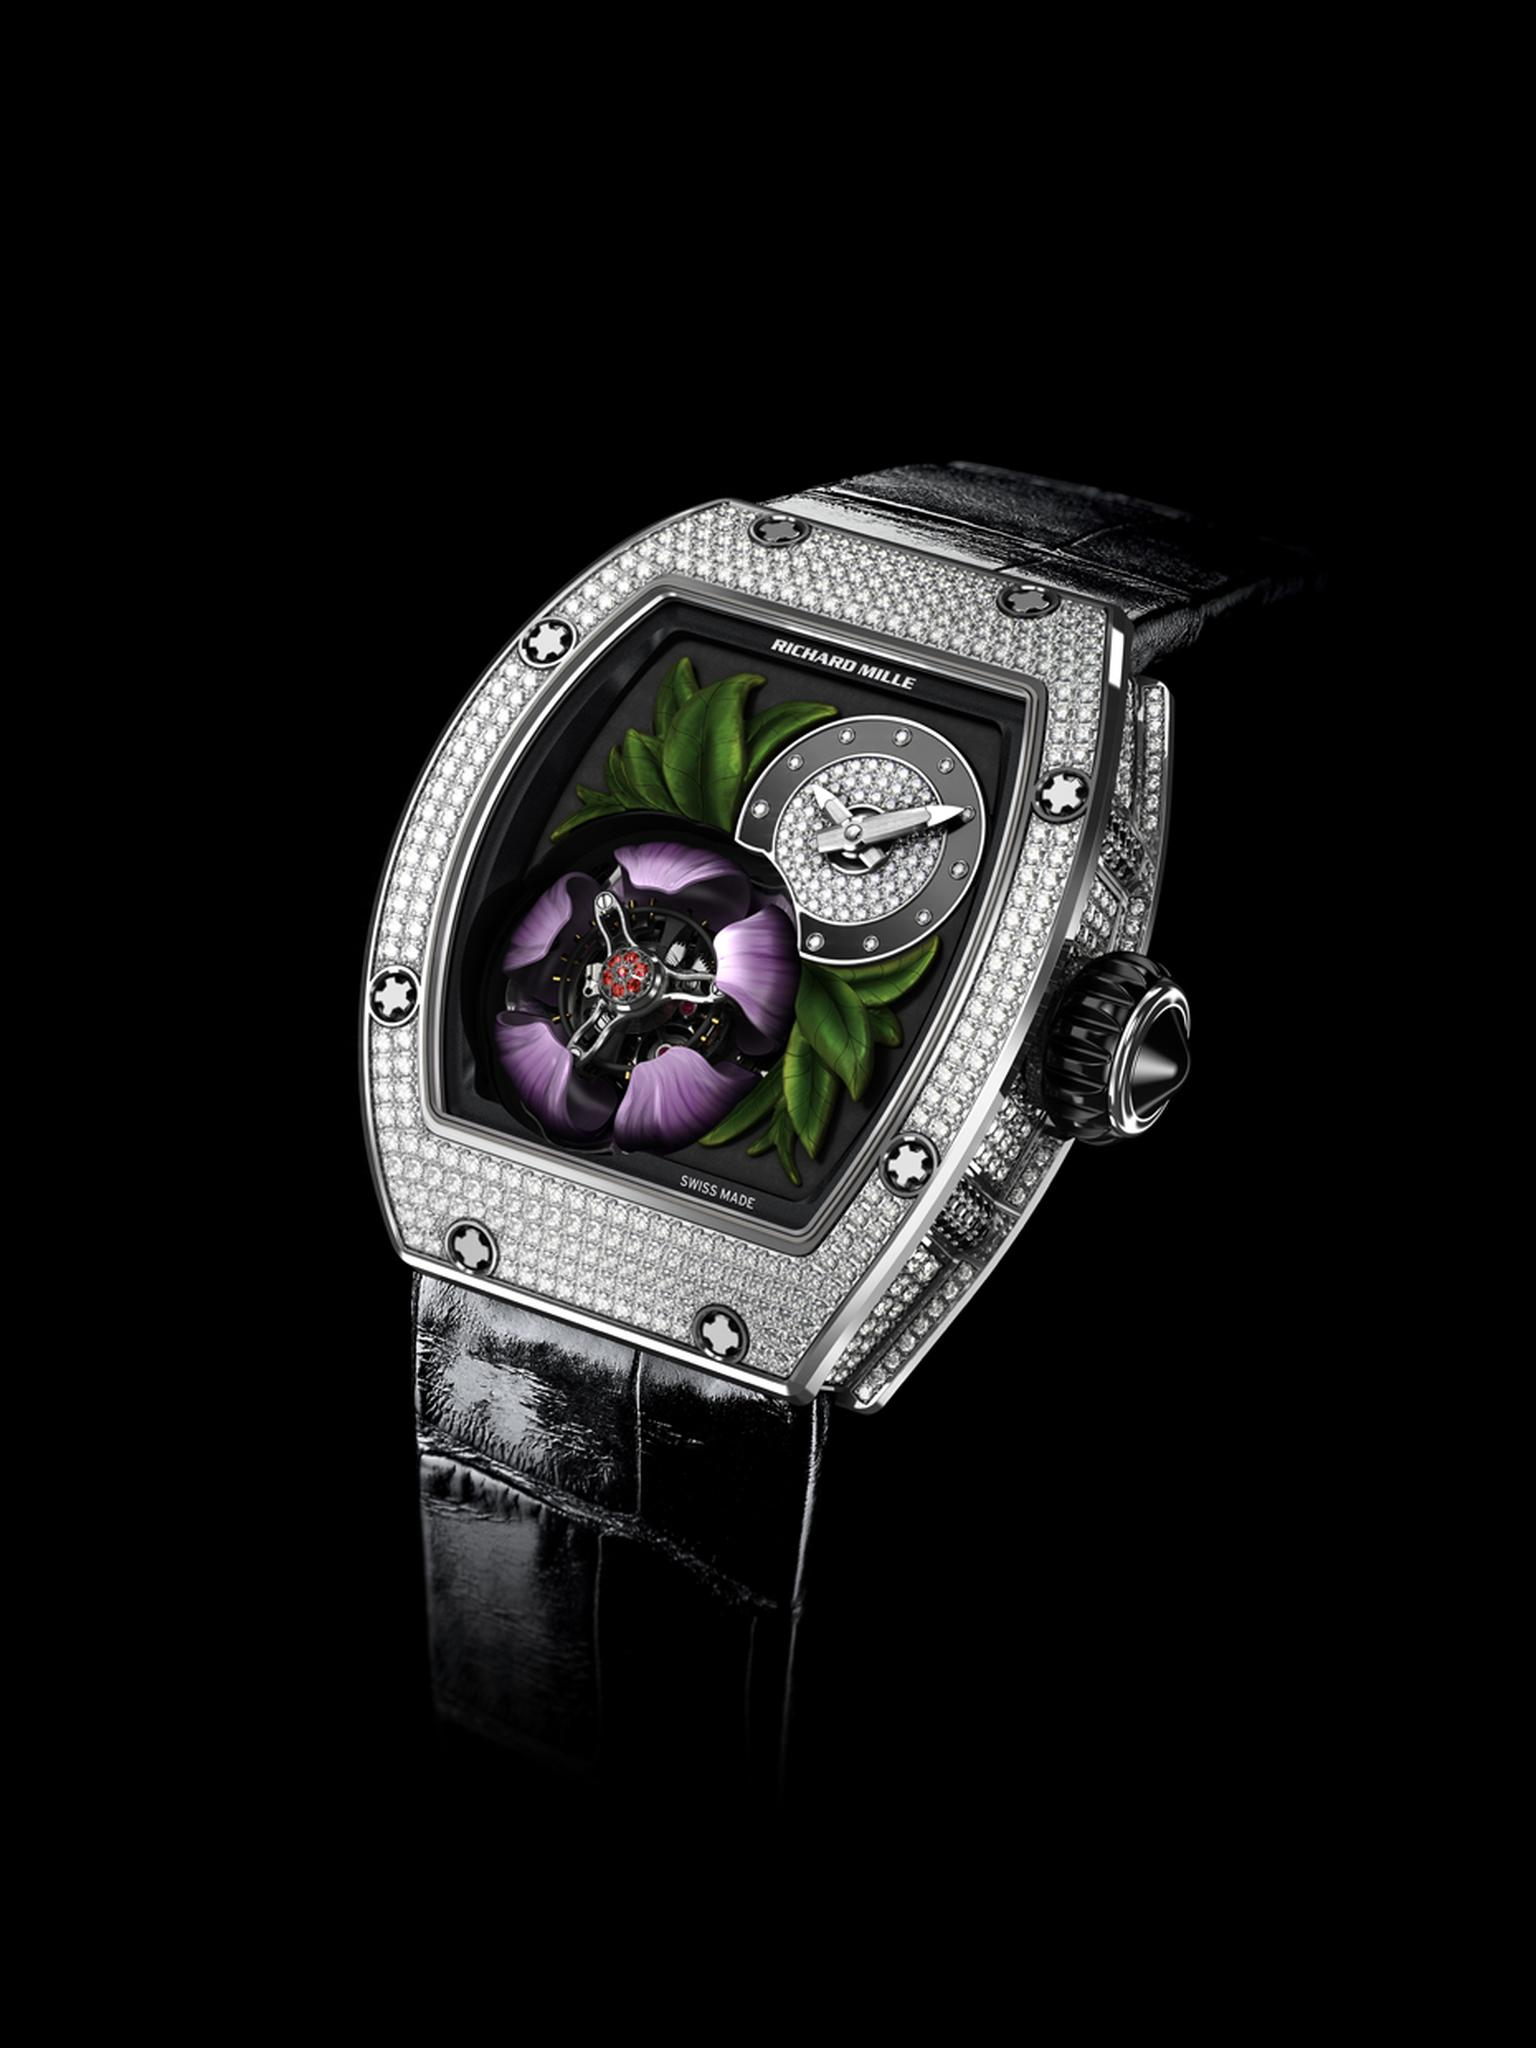 The new Richard Mille RM 19-02 Tourbillon Fleur watch is a real show-stopper, recreating a magnolia flower protecting a flying tourbillon escapement with its five pink-coloured gold petals.